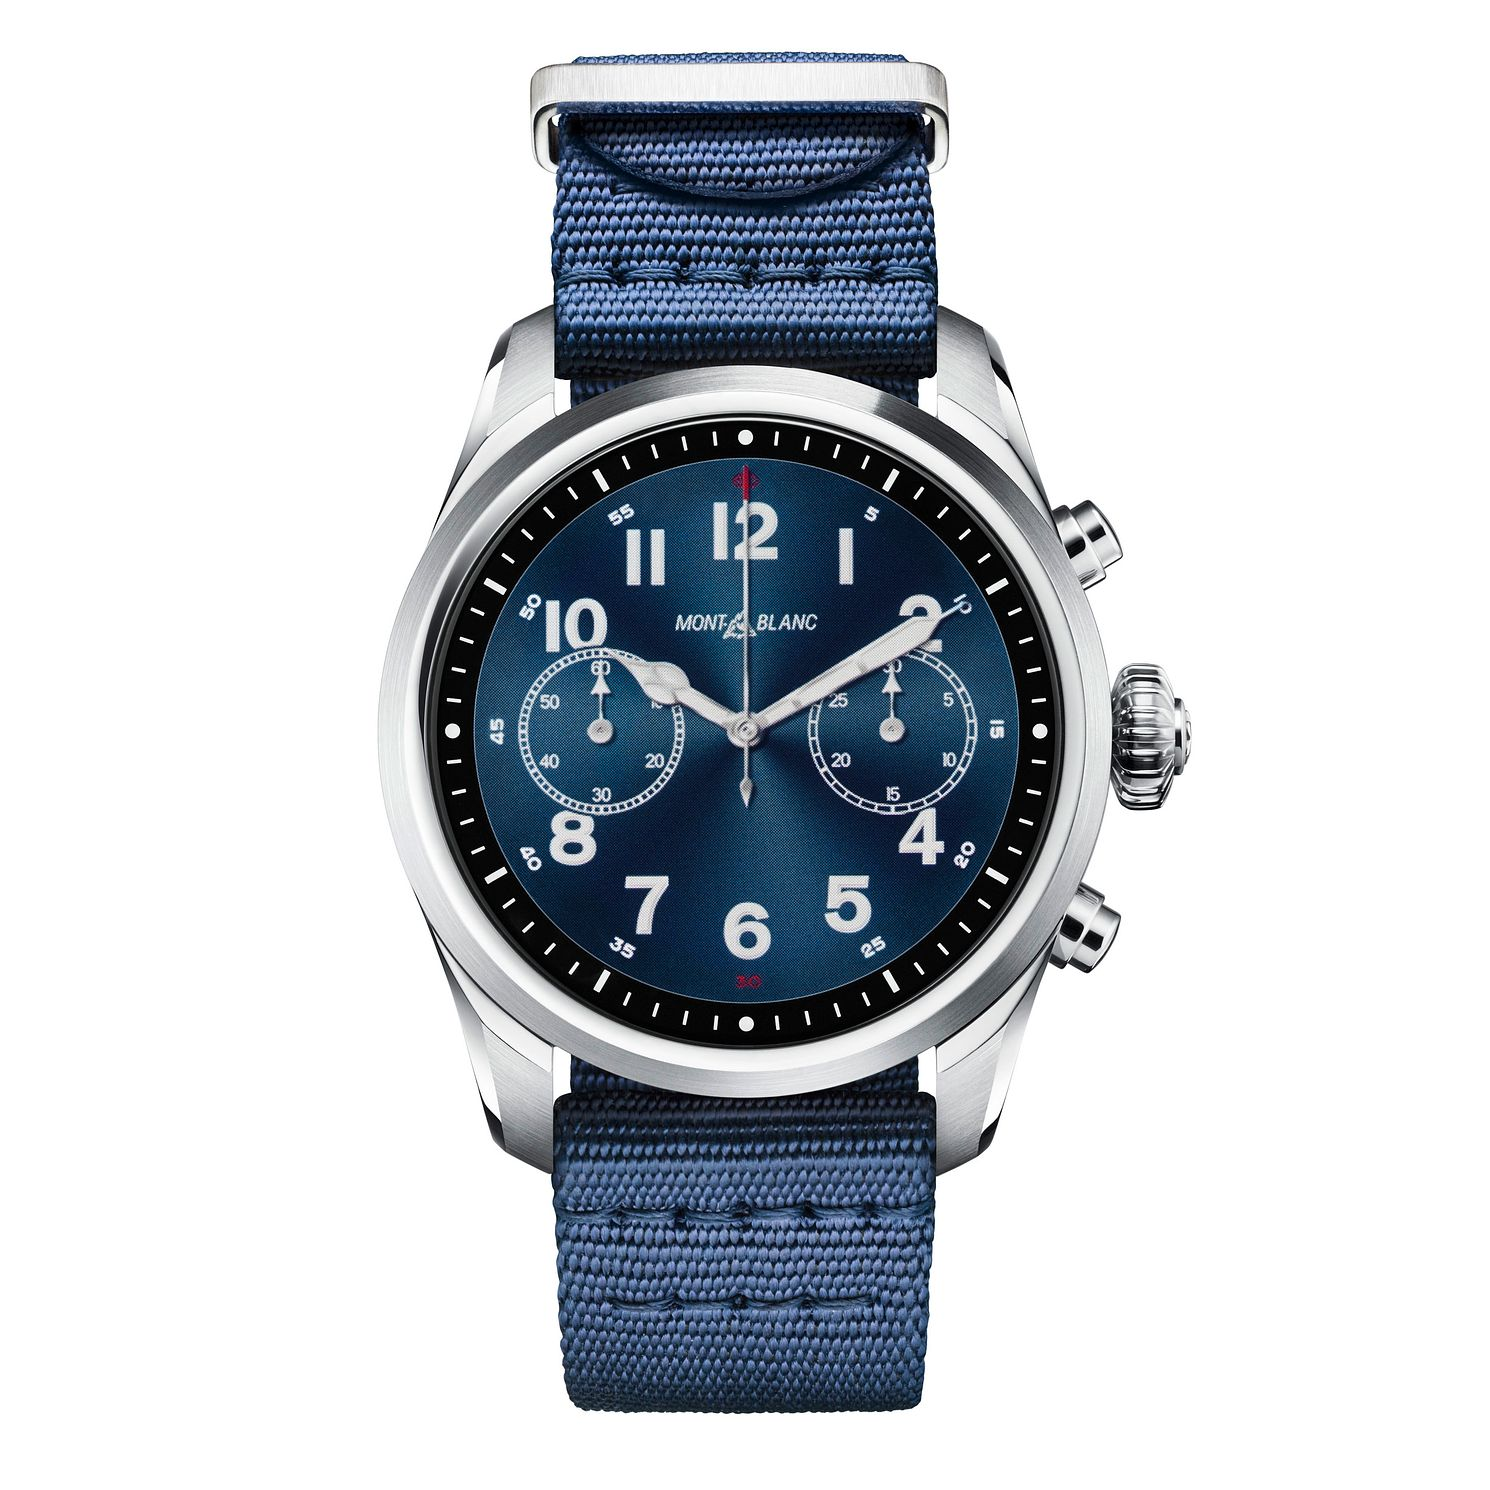 Montblanc Summit 2 Men's Blue Nylon Strap Smartwatch - Product number 2335530